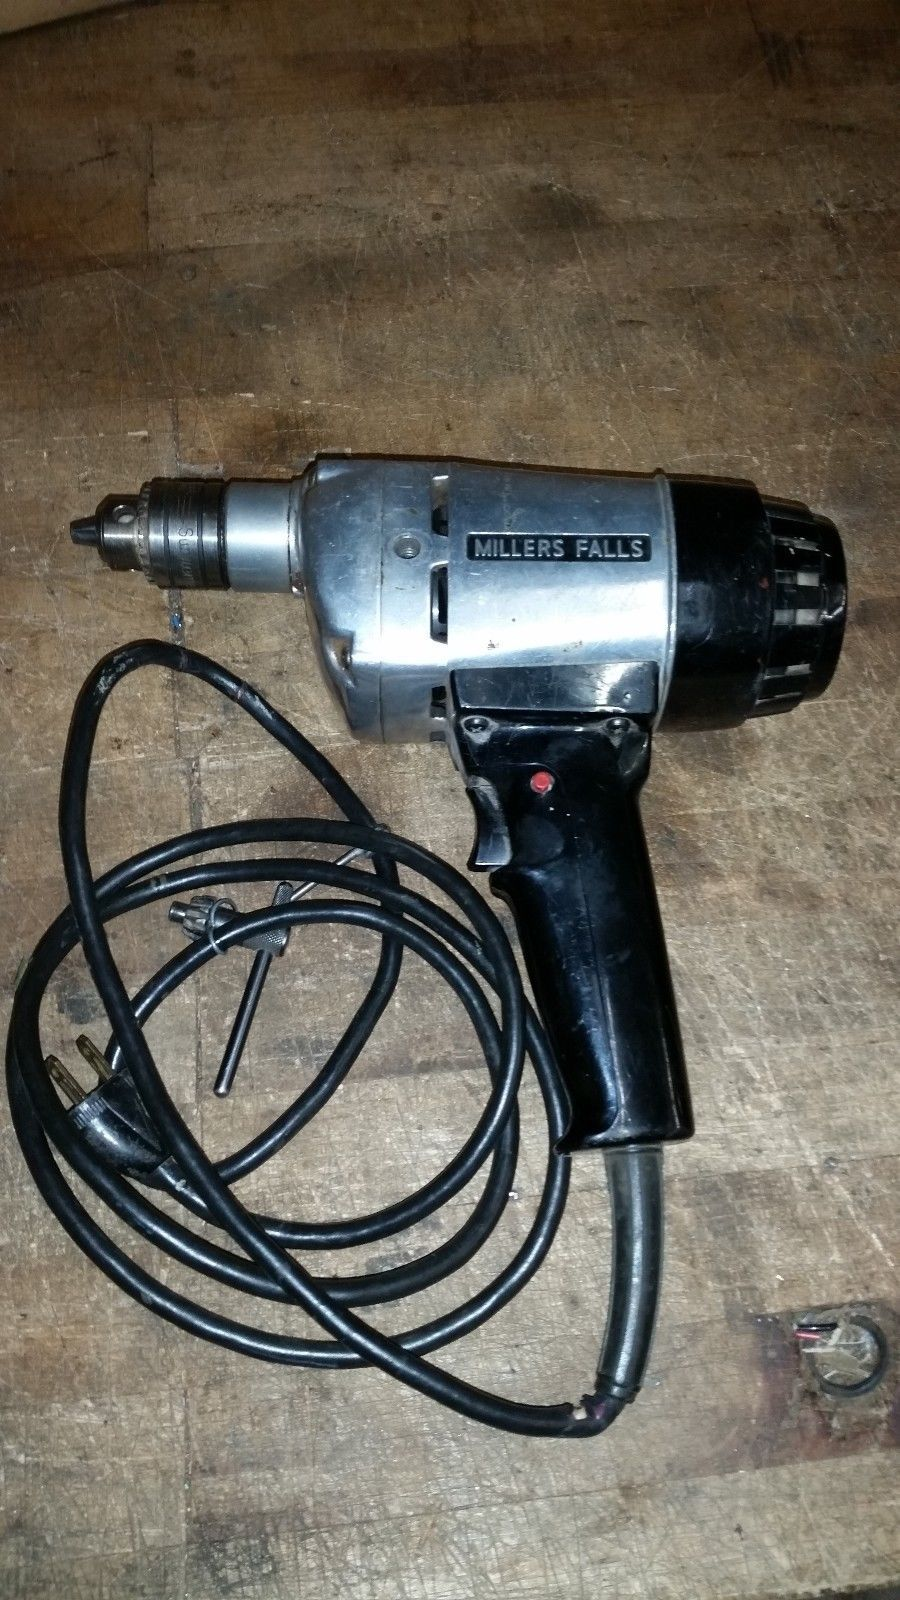 VINTAGE MILLERS FALLS ELECTRIC DRILL 3/8